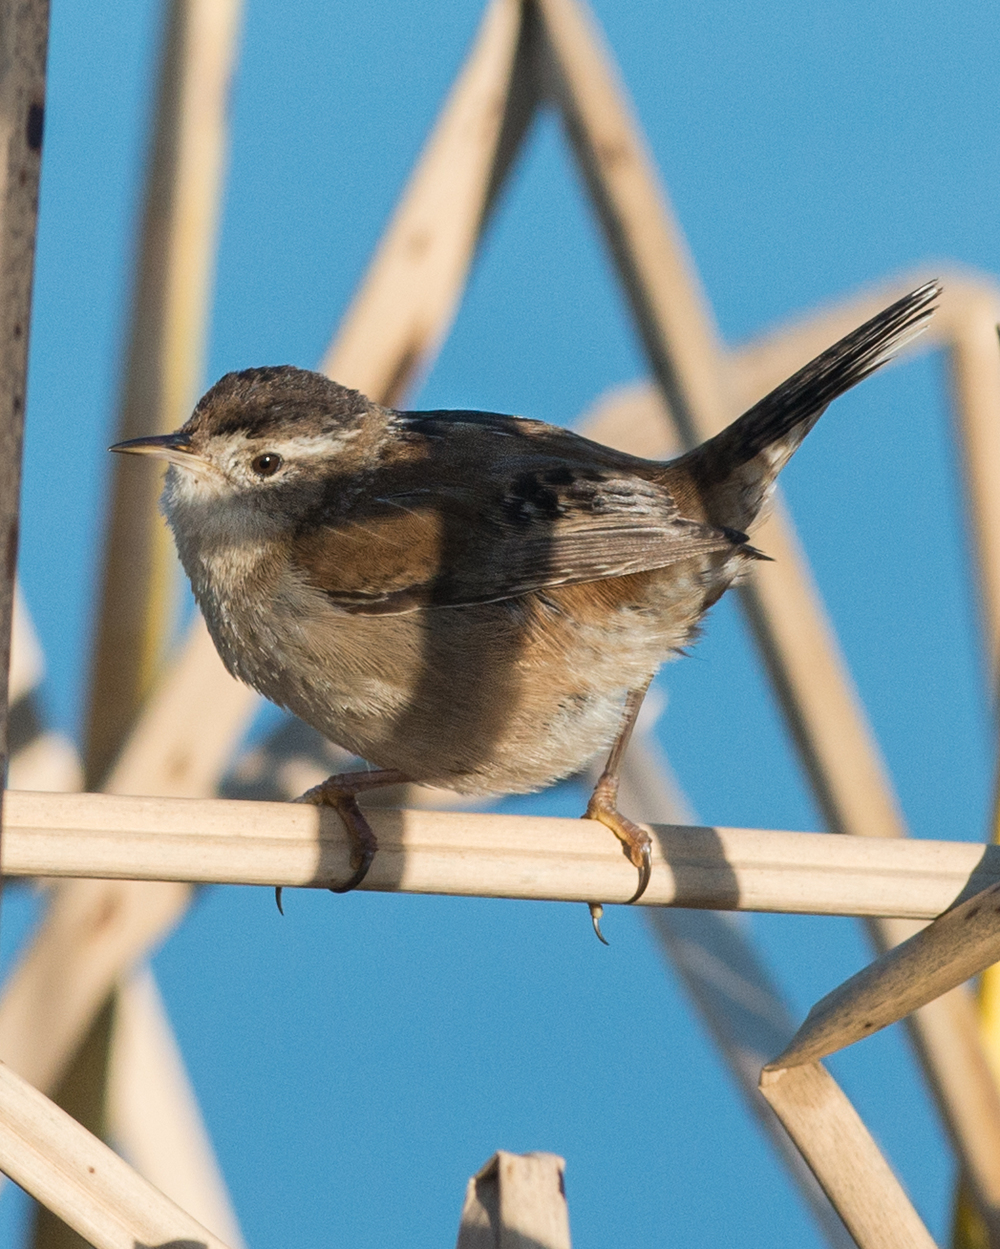 Marsh Wren (Cistothorus palustris) Taken: 2-12-15 8:24 at Baldwin Creek 1/1600, ISO250, f/6.3, 300mm